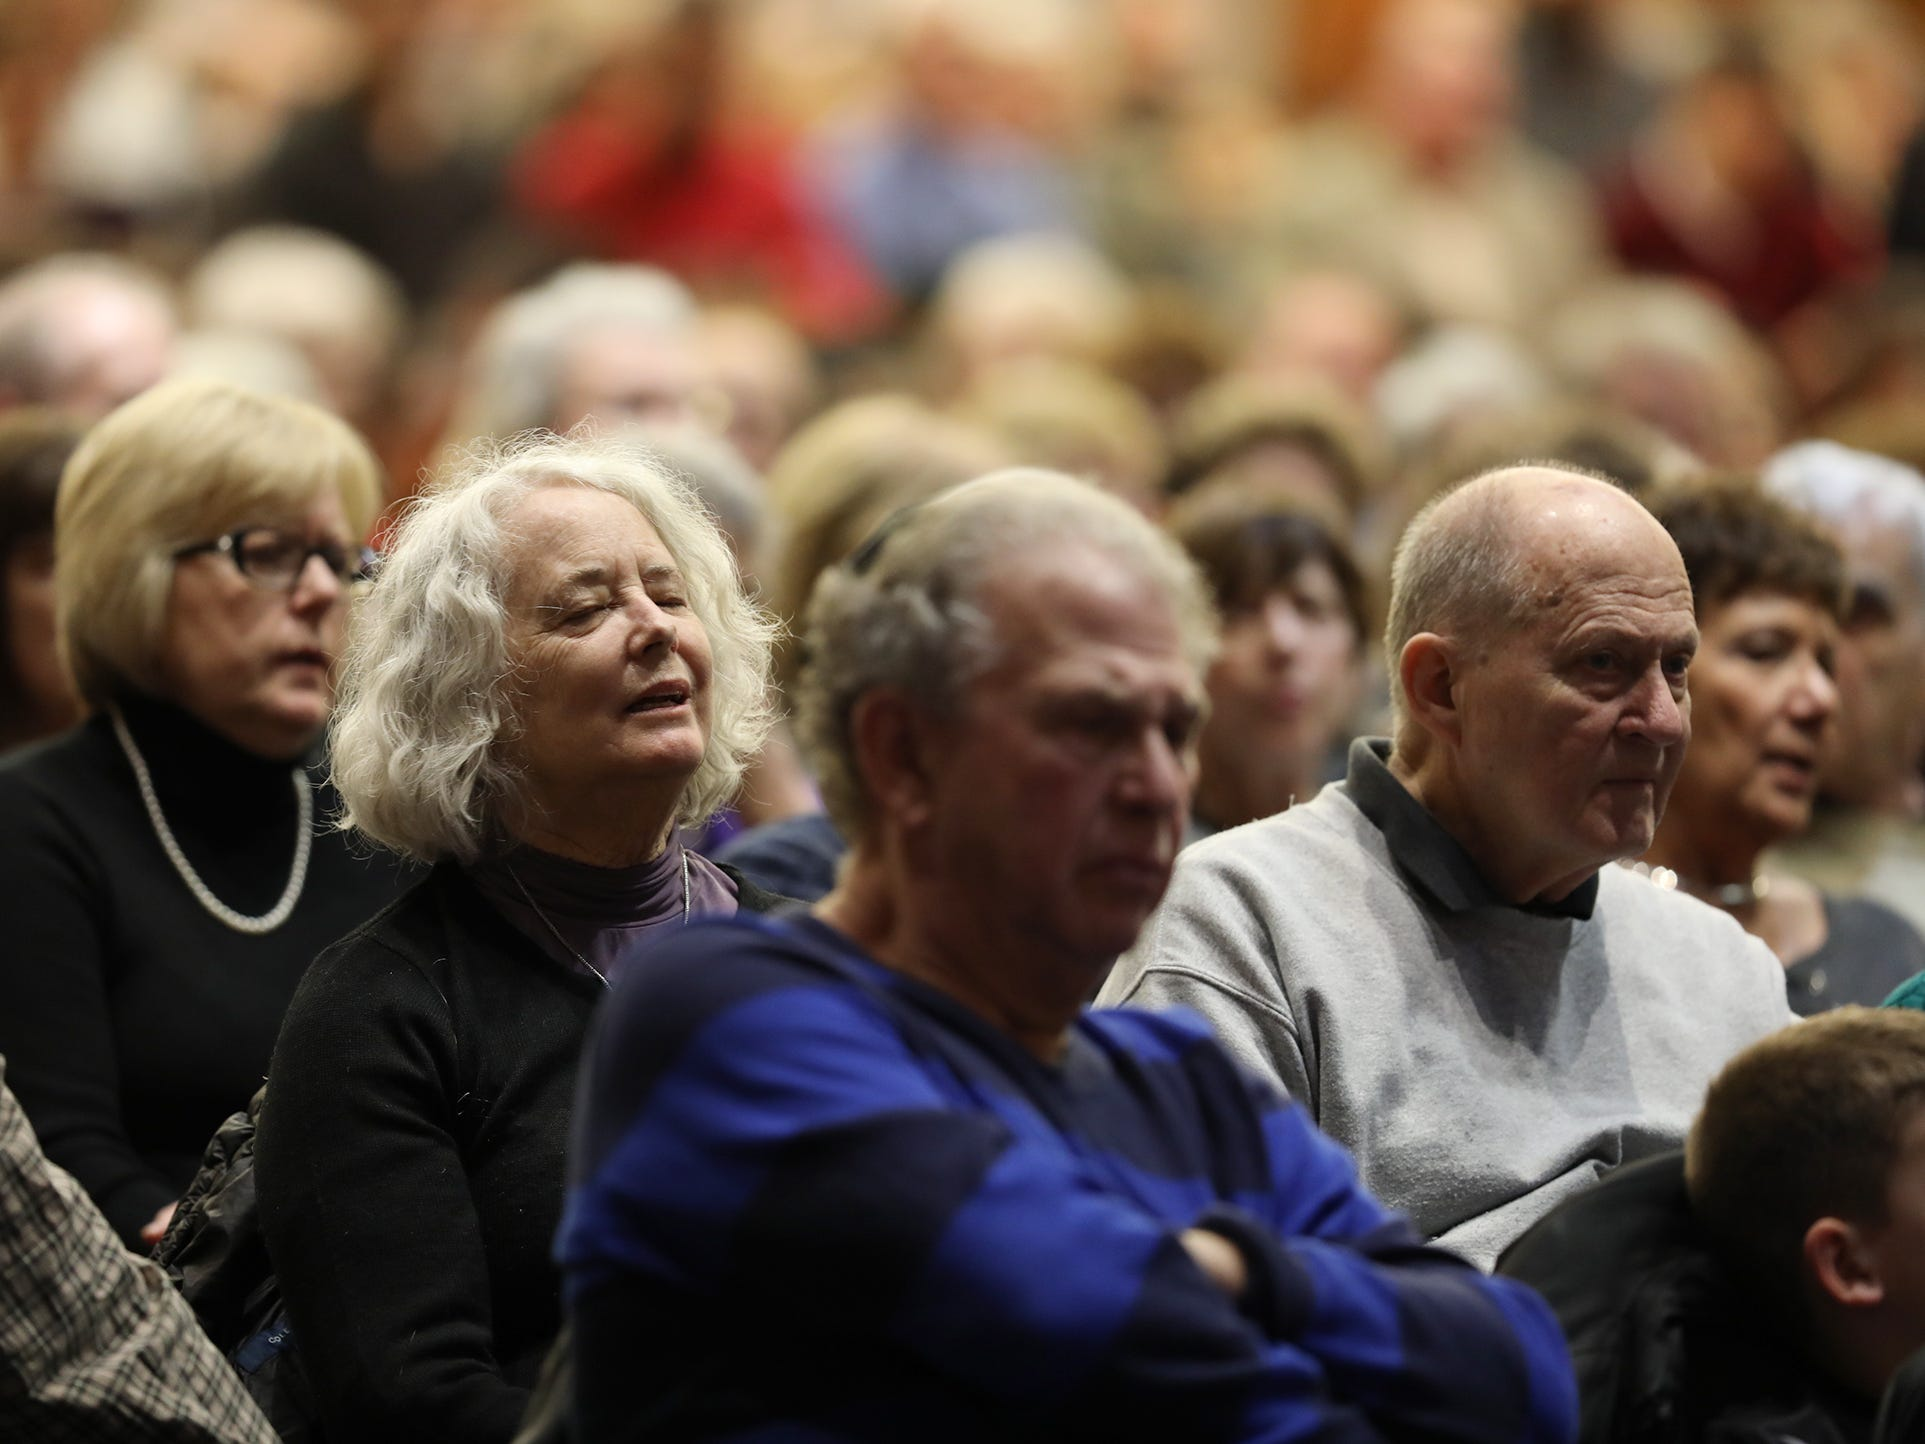 A large number of people came to the community vigil at Temple B'rith Kodesh in response to the shootings at a synagogue in Pittsburgh that killed 11 and injured others Saturday.